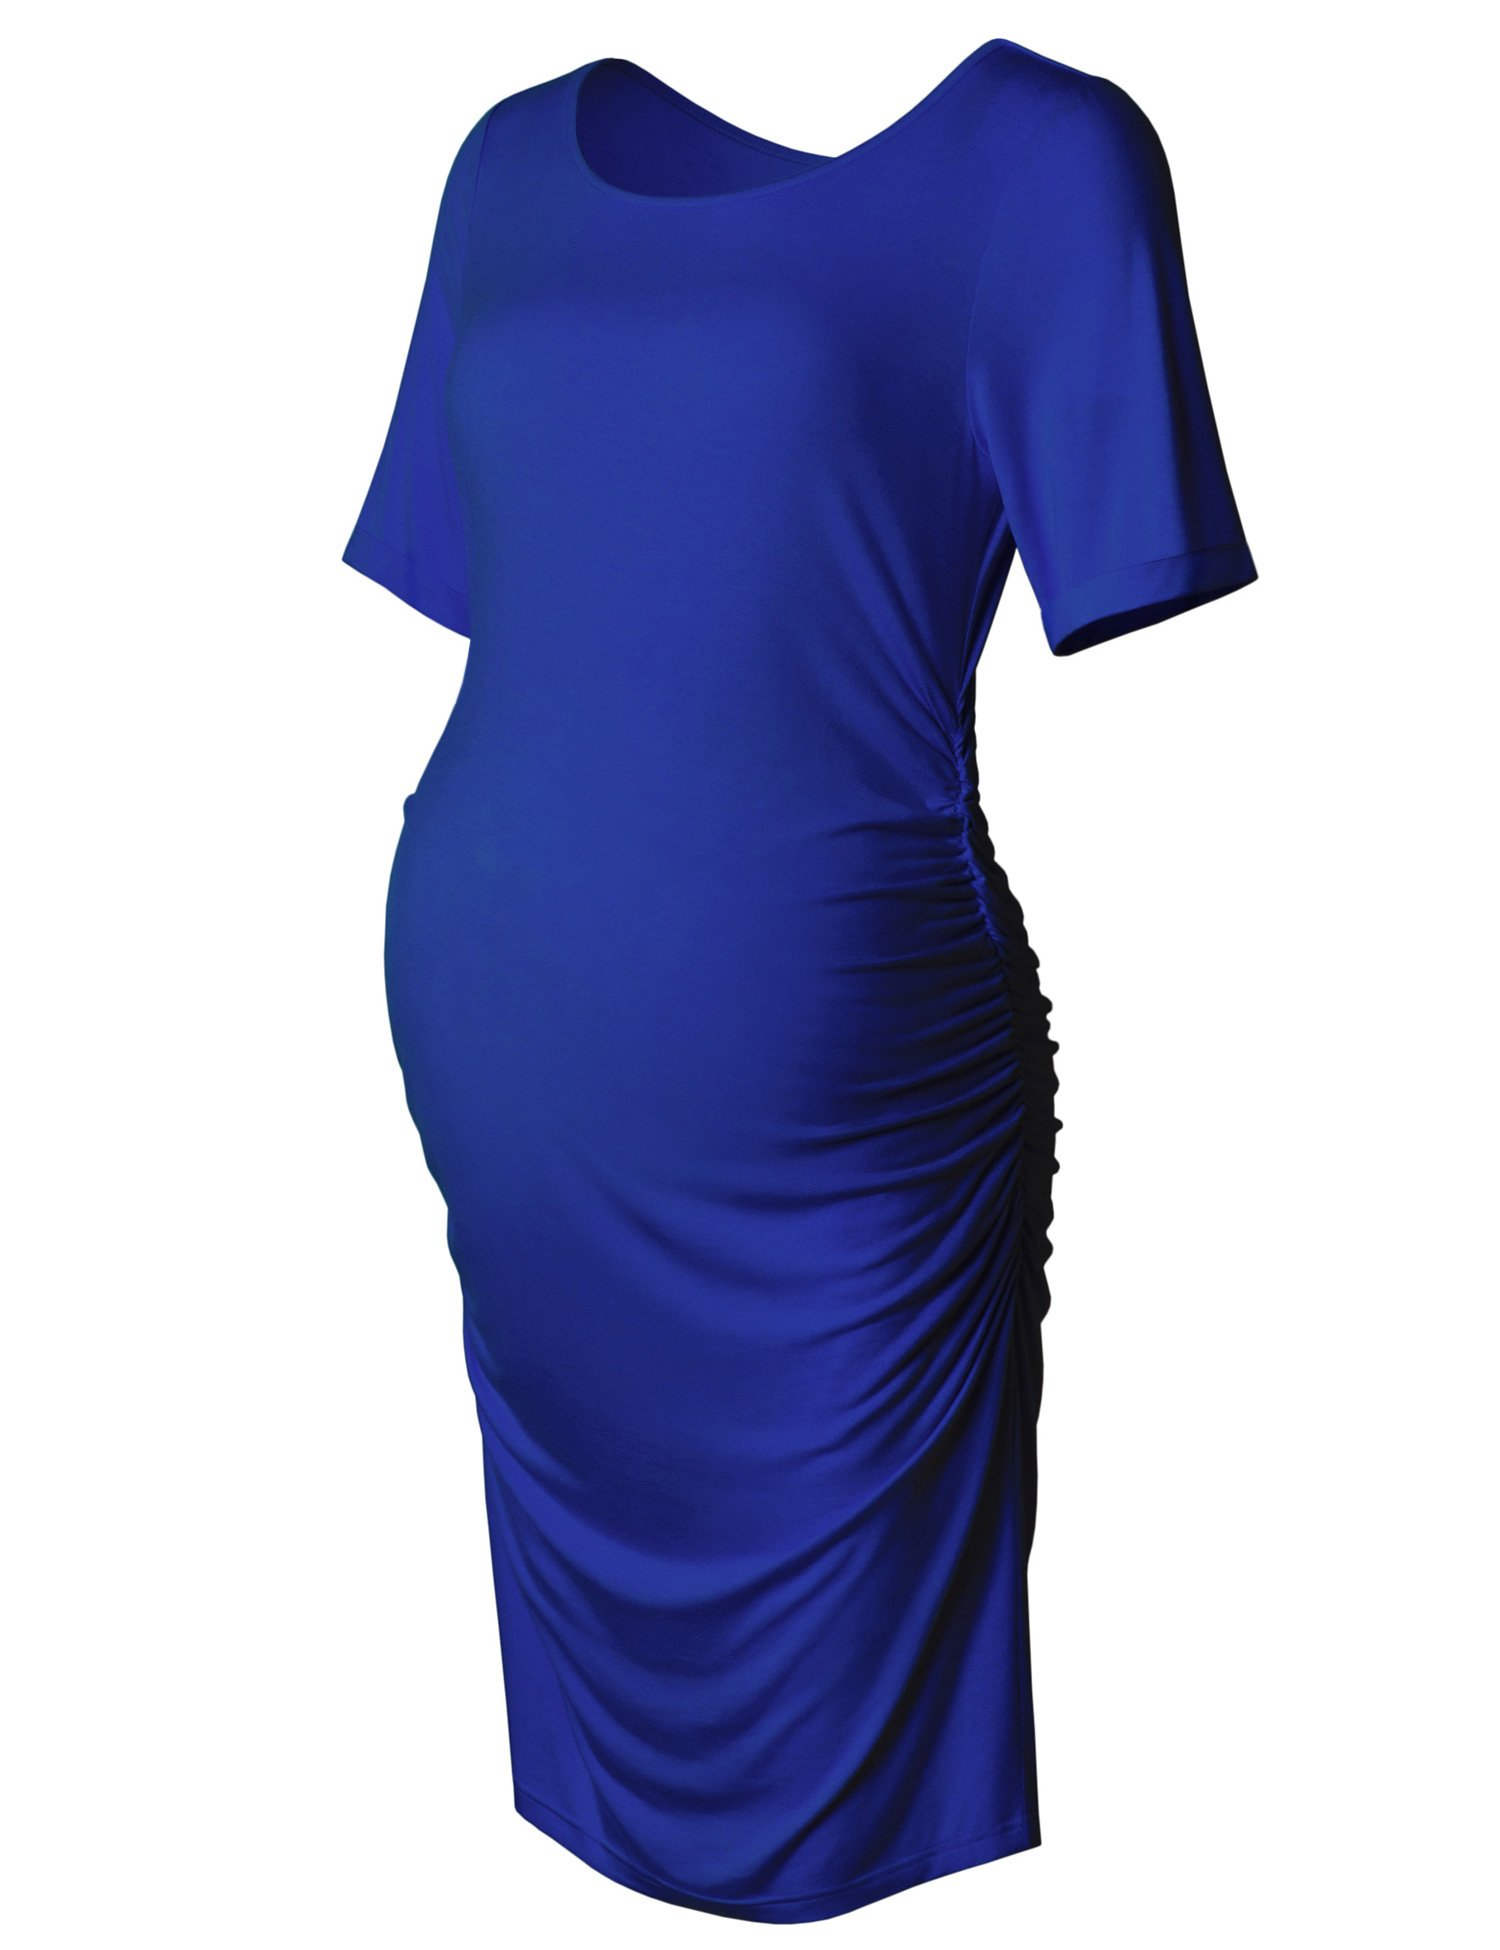 Maternity Bodycon Dress Short Sleeve Ruched Sides Knee Length Dress Royal Blue M by Bhome